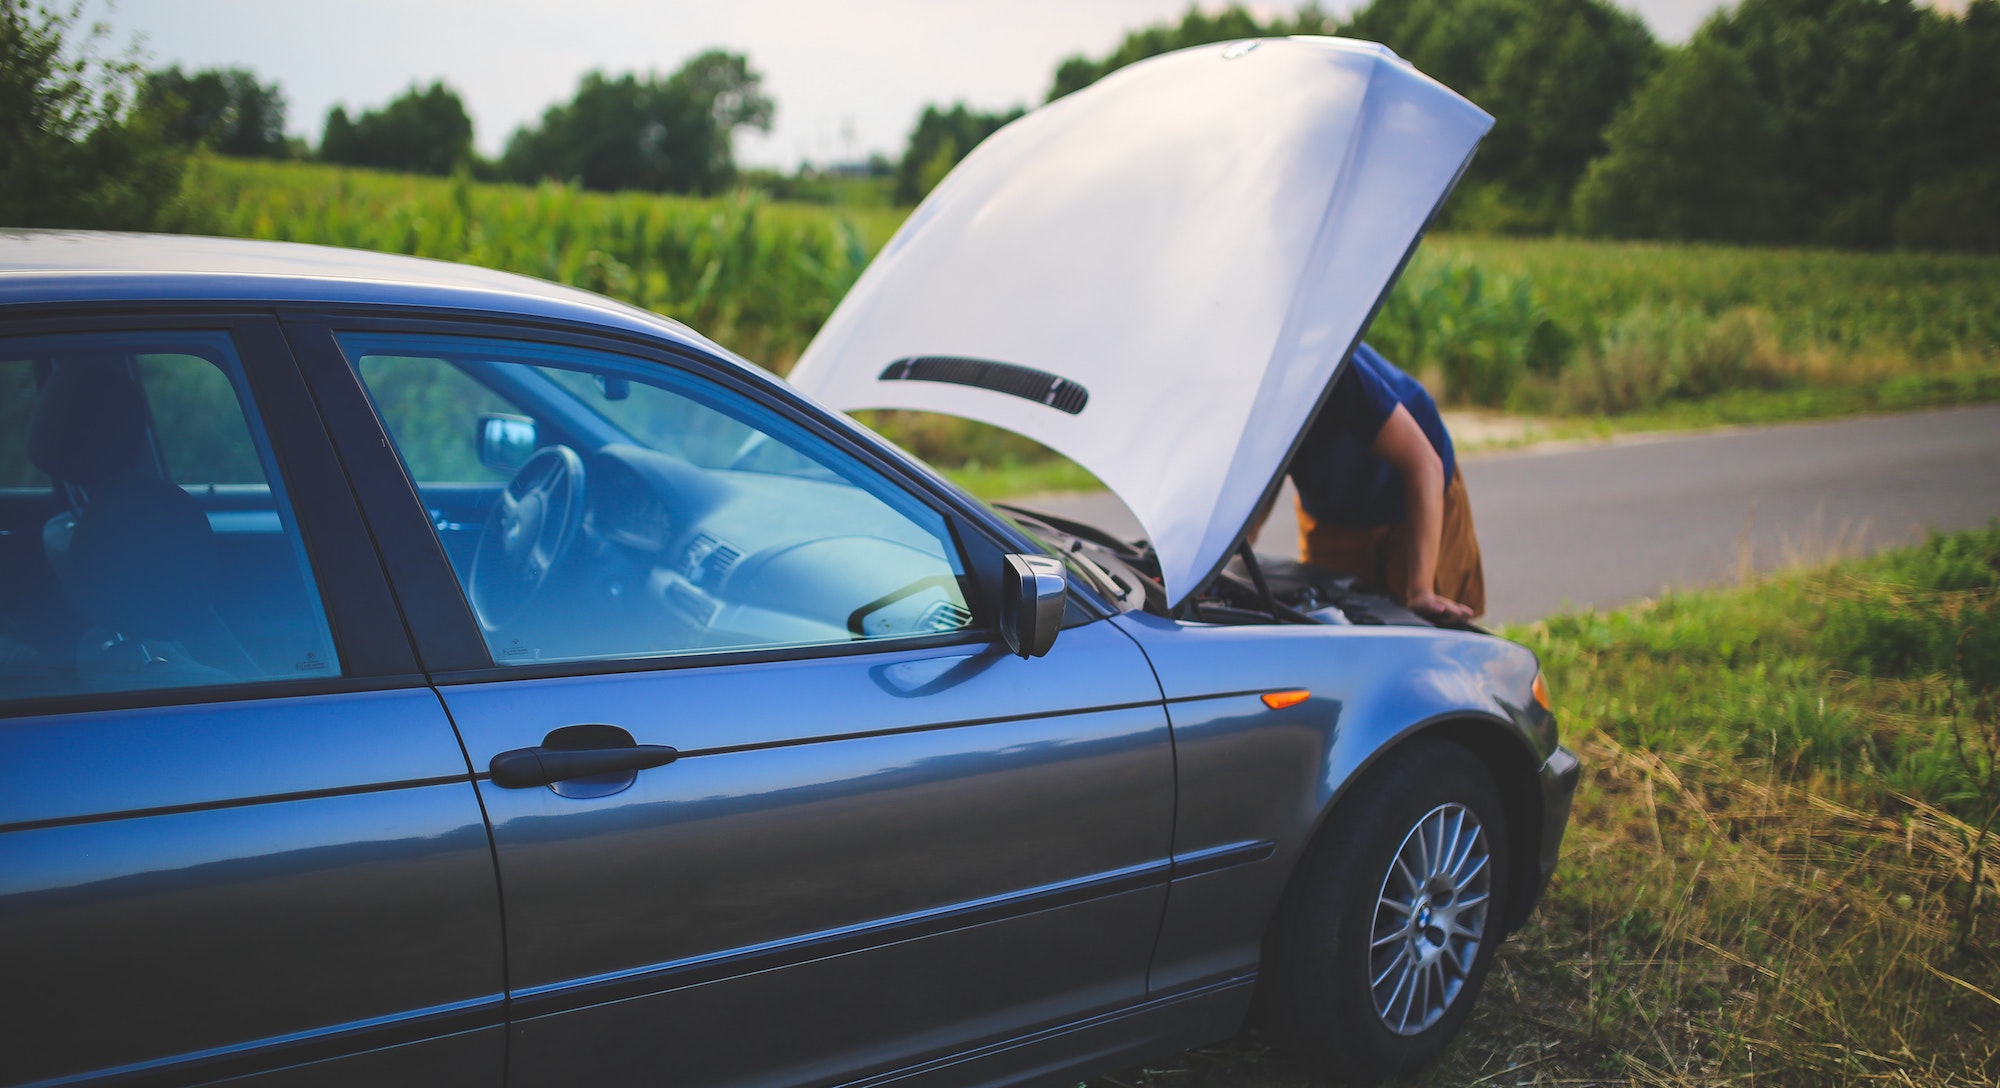 Credit Cards that provide Free Roadside Assistance